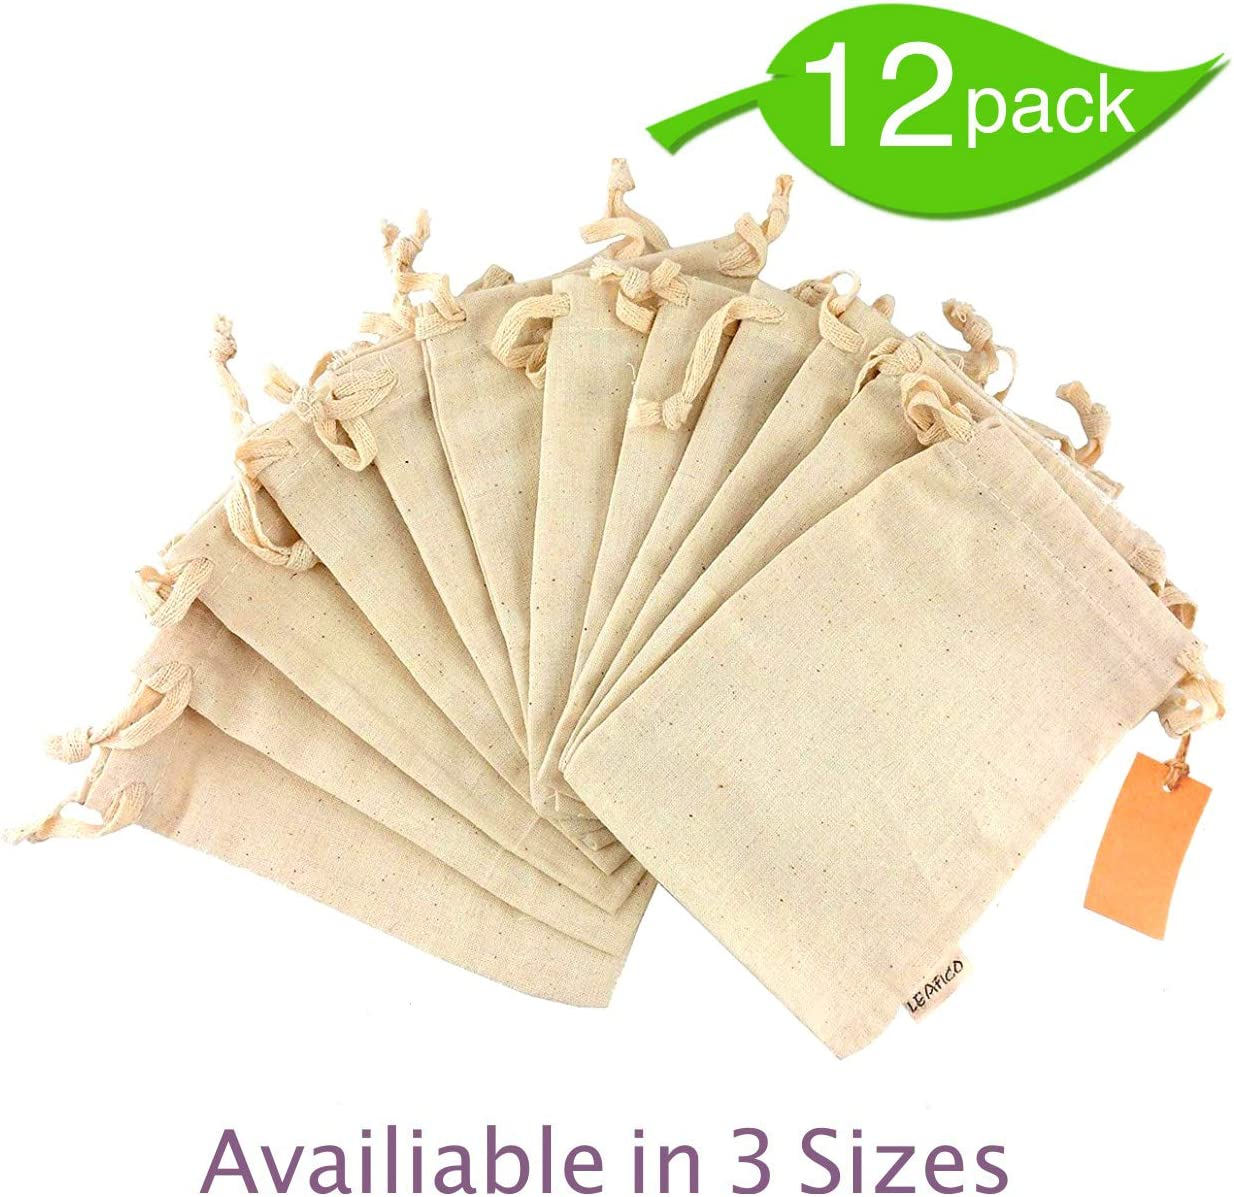 12 Pcs Organic Cotton Reusable Produce Bags, Biodegradable Eco-Friendly Bulk Bin Bags for Food - Small 5x7 - Sachet Bags, Fruit Vegetable Storage, Drawstring Pouch - Produce Linen Bag by Leafico